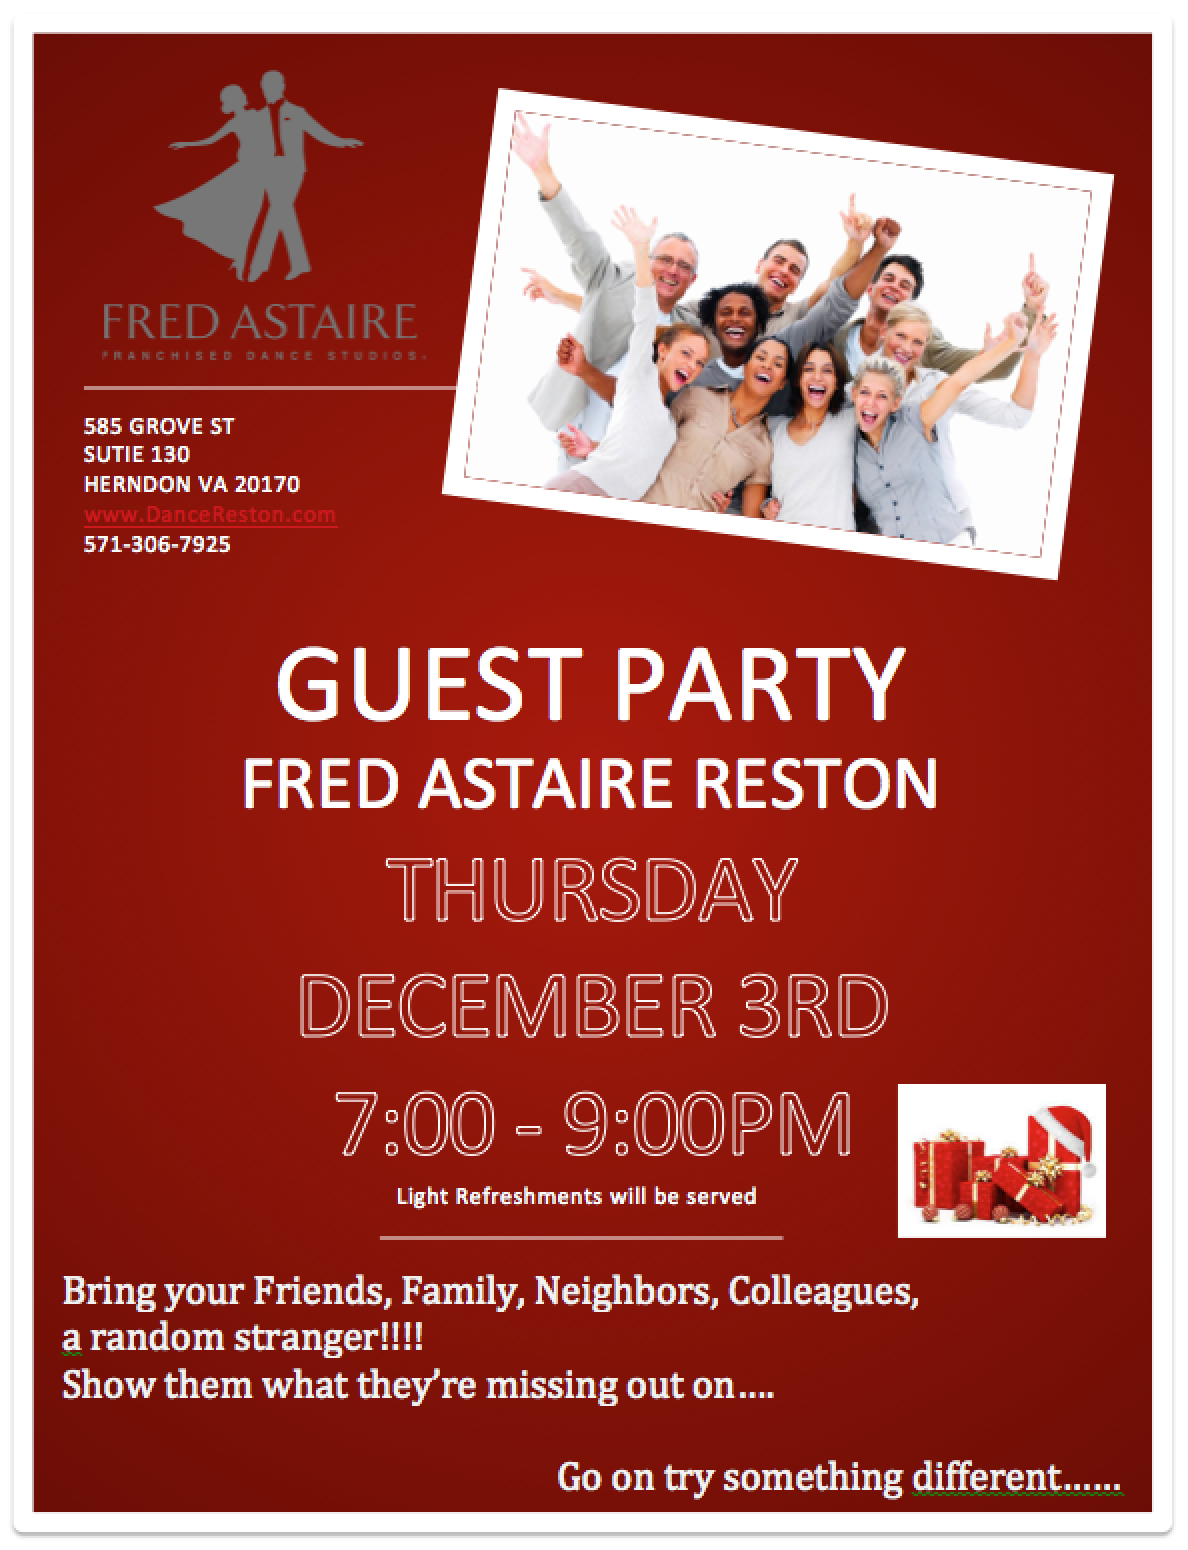 Next Guest Party Dec 5th | Fred Astaire Franchise Dance Studio